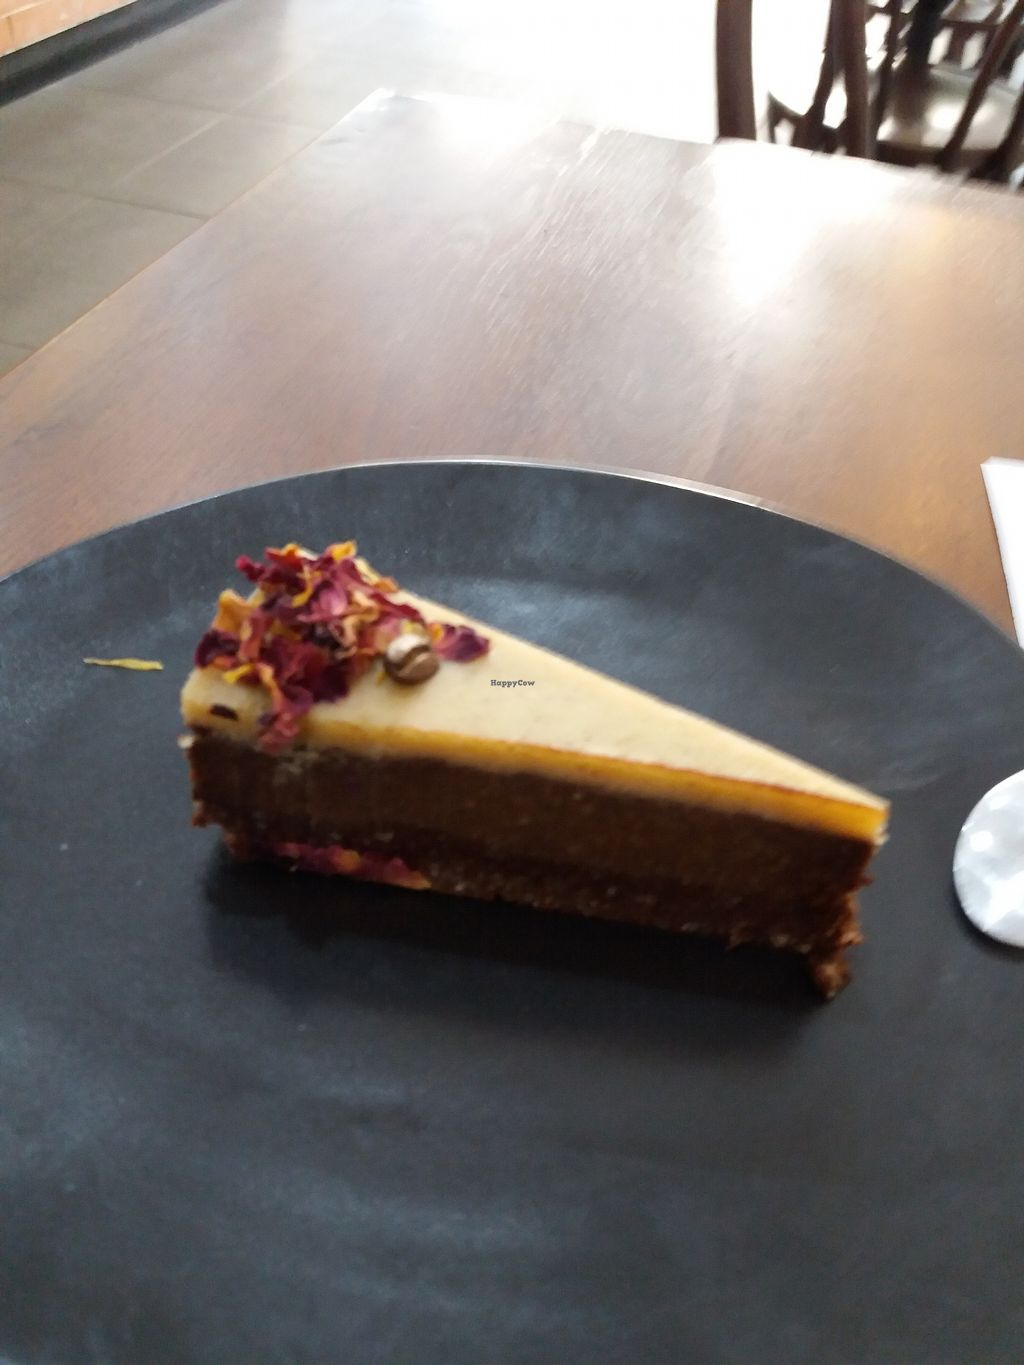 """Photo of Real Grounded  by <a href=""""/members/profile/veganvirtues"""">veganvirtues</a> <br/>Coffee cheese cake <br/> July 22, 2017  - <a href='/contact/abuse/image/95842/283073'>Report</a>"""